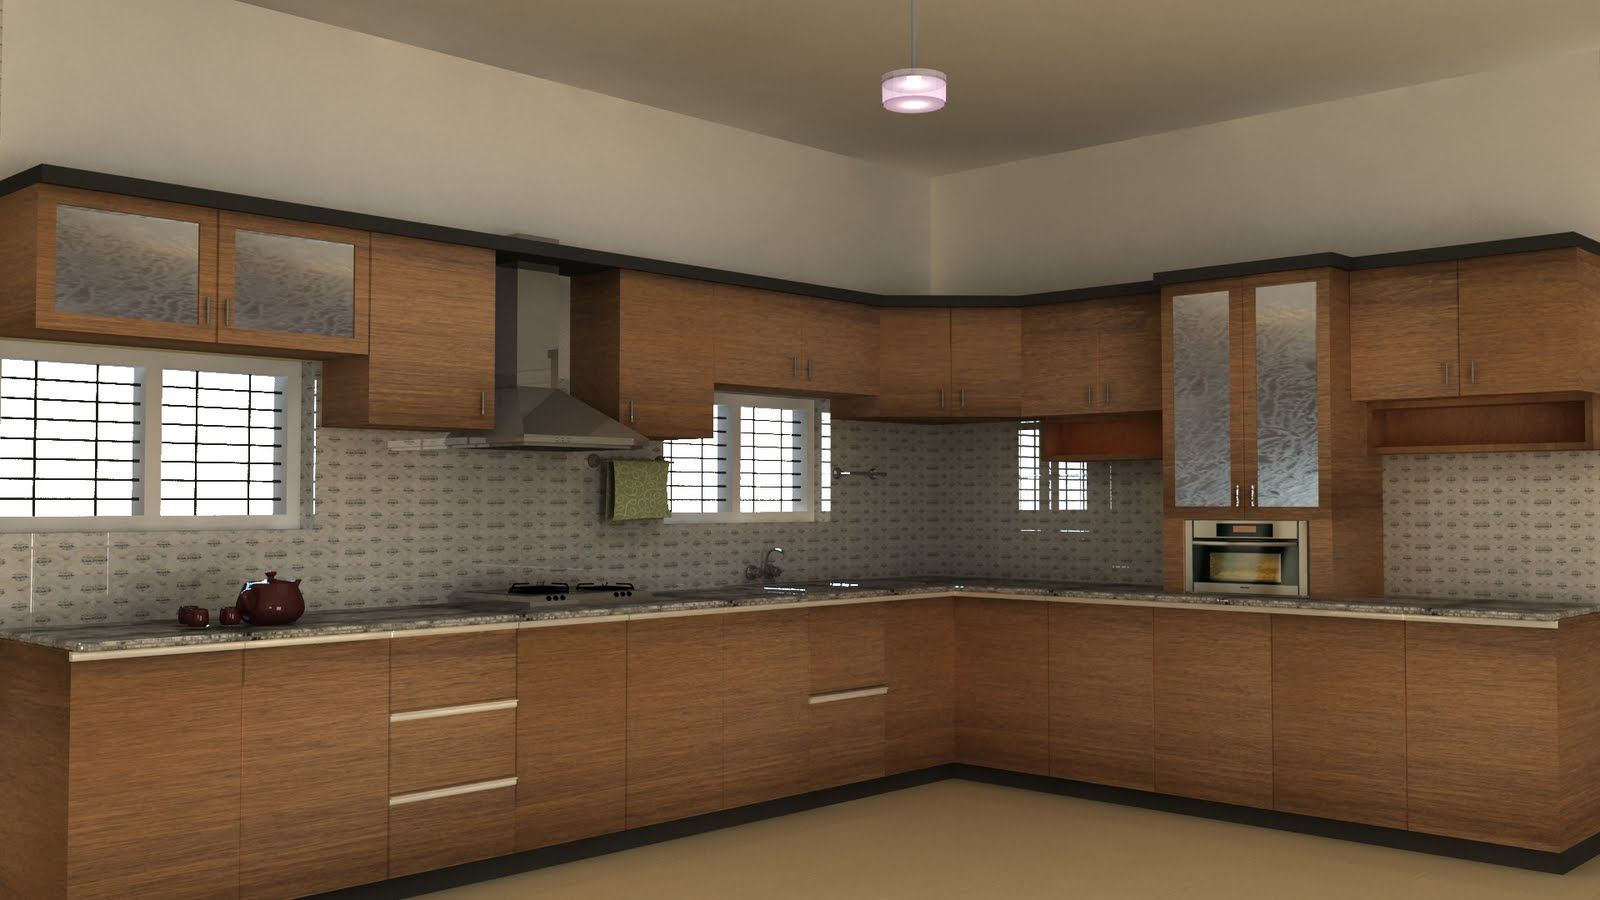 Kitchen Design Kerala Style kitchen design photos india - creditrestore